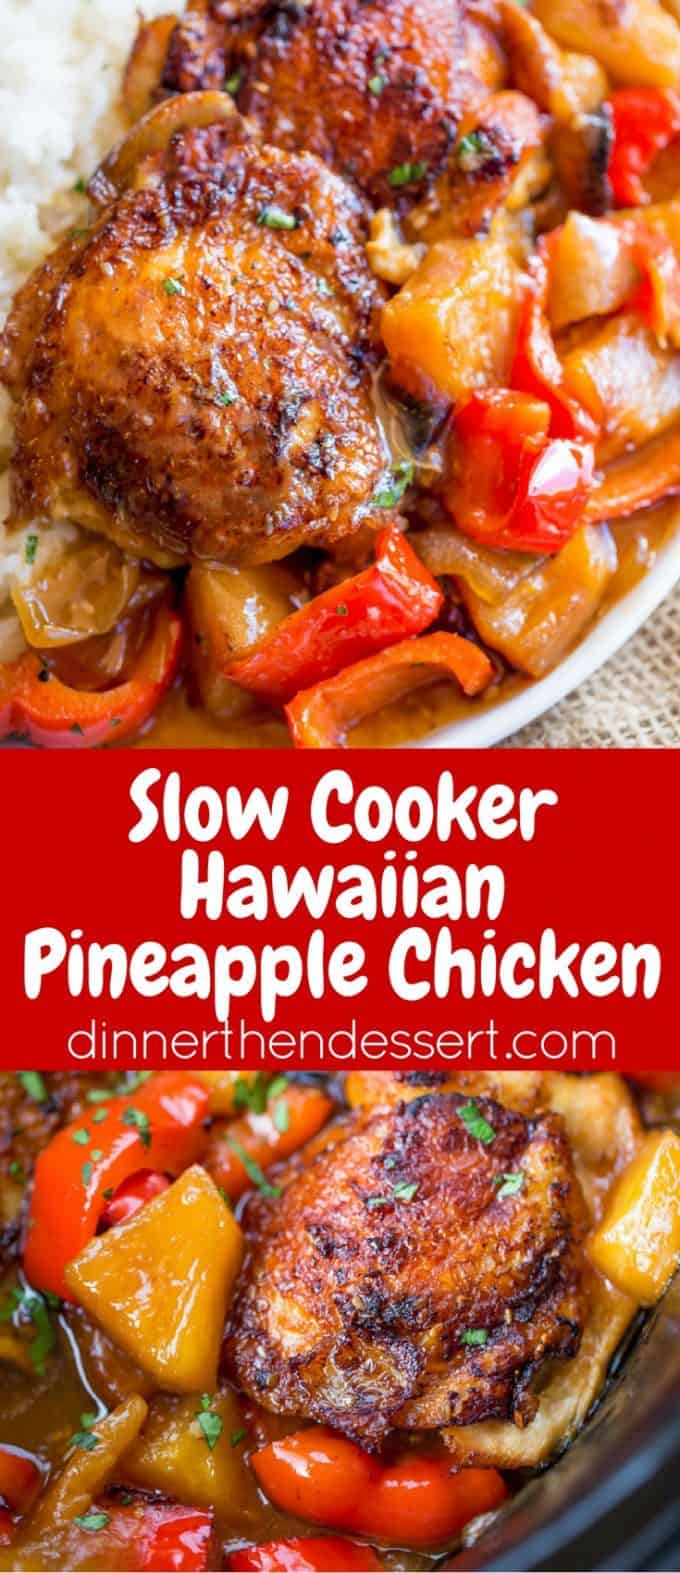 Slow Cooker Hawaiian Pineapple Chicken collage